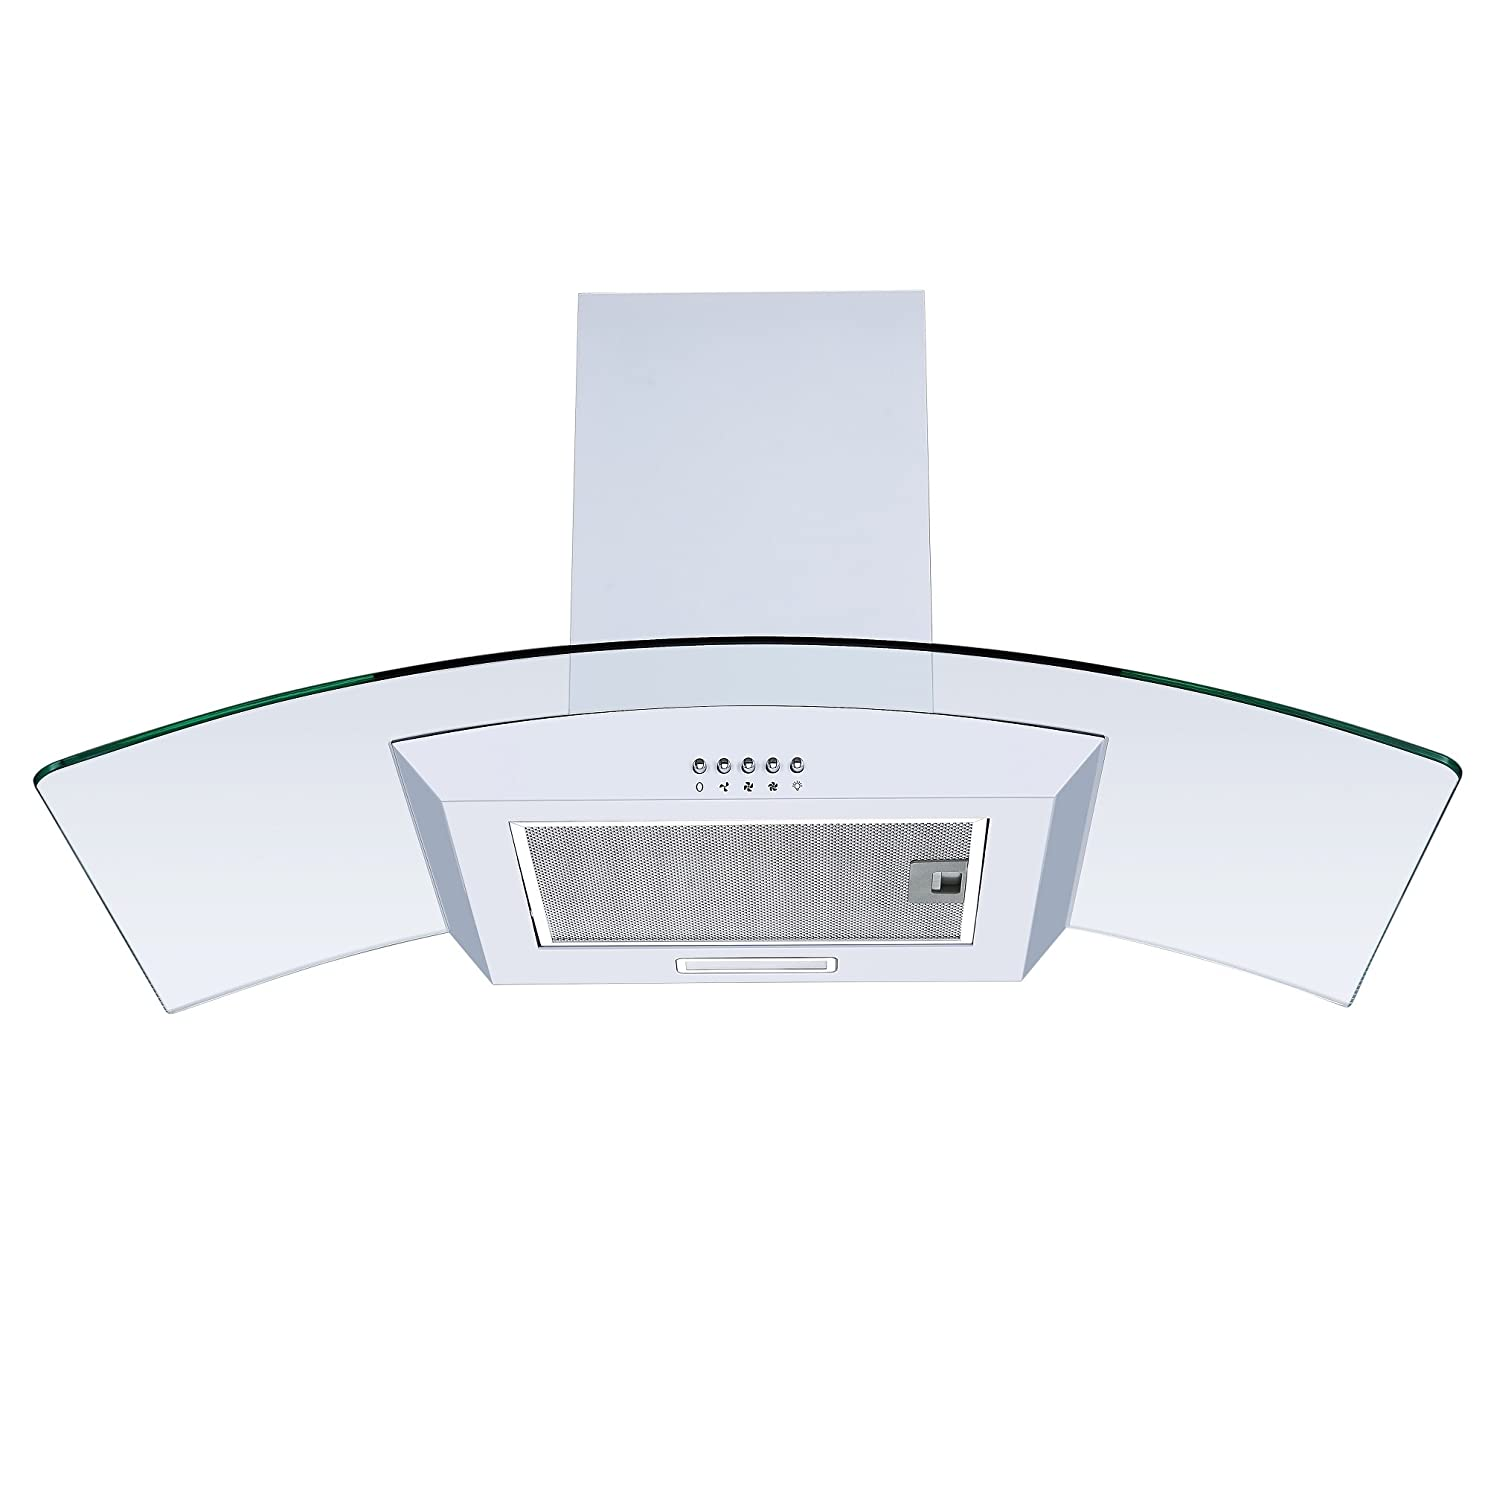 White 90cm Curved Glass Chimney Cooker Hood | Cookology CGL900WH Unbranded Extractor Fan in White